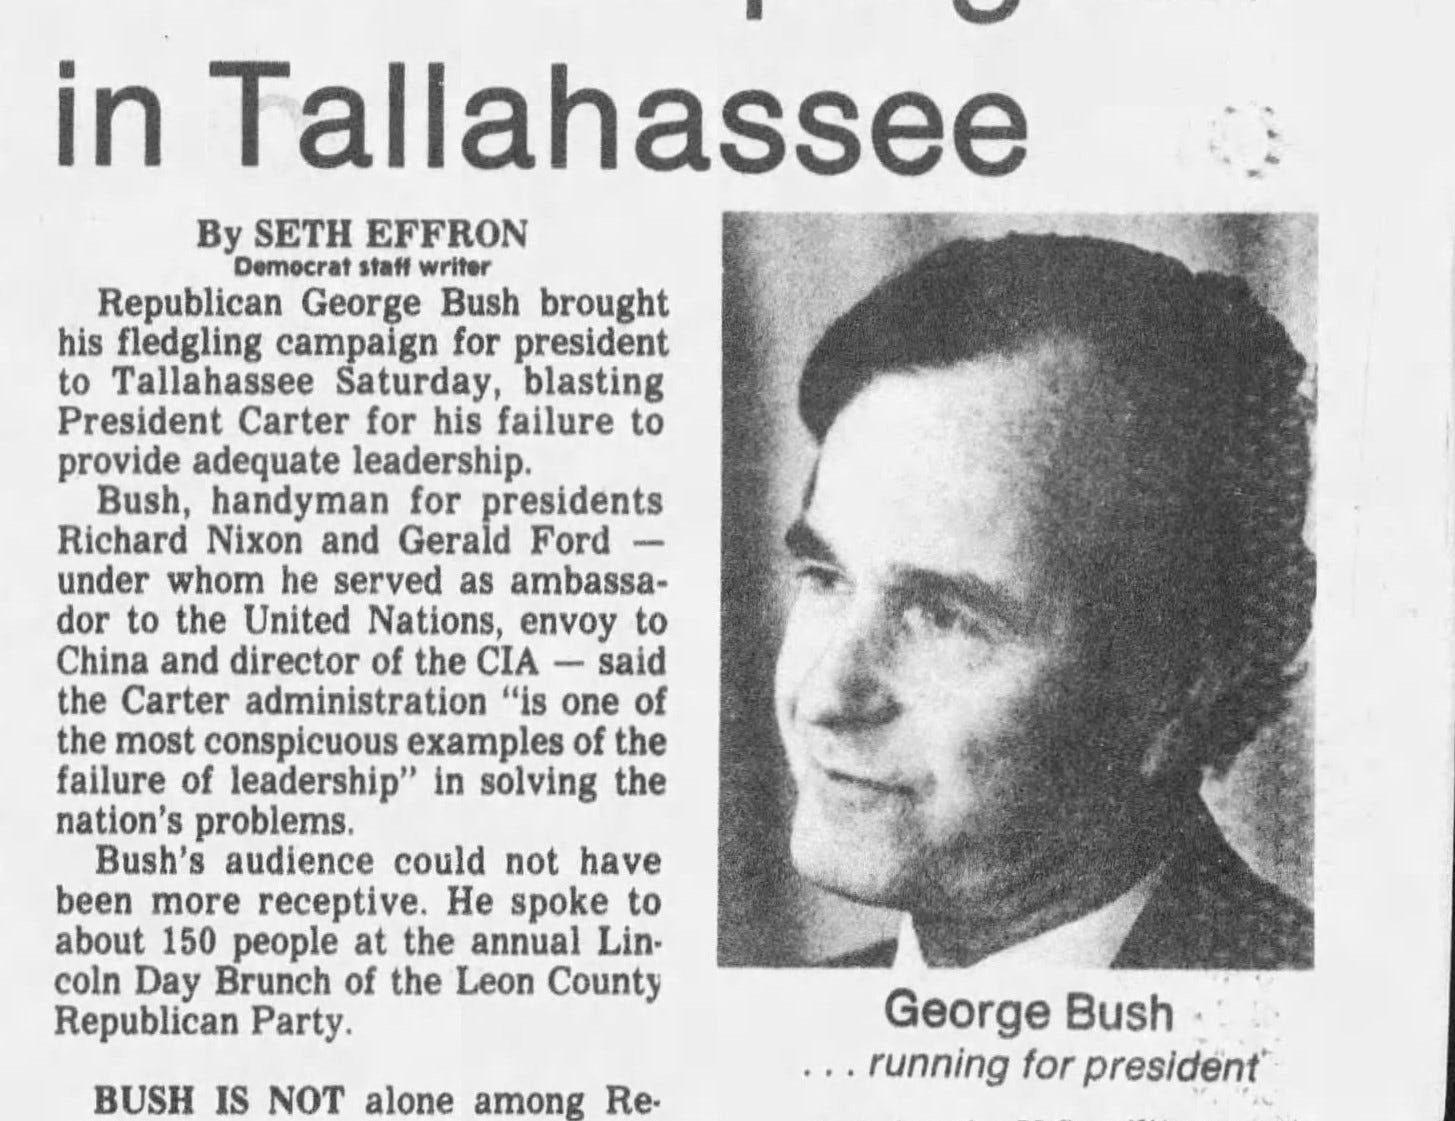 A clip from the Feb. 25, 1979, Tallahassee Democrat.